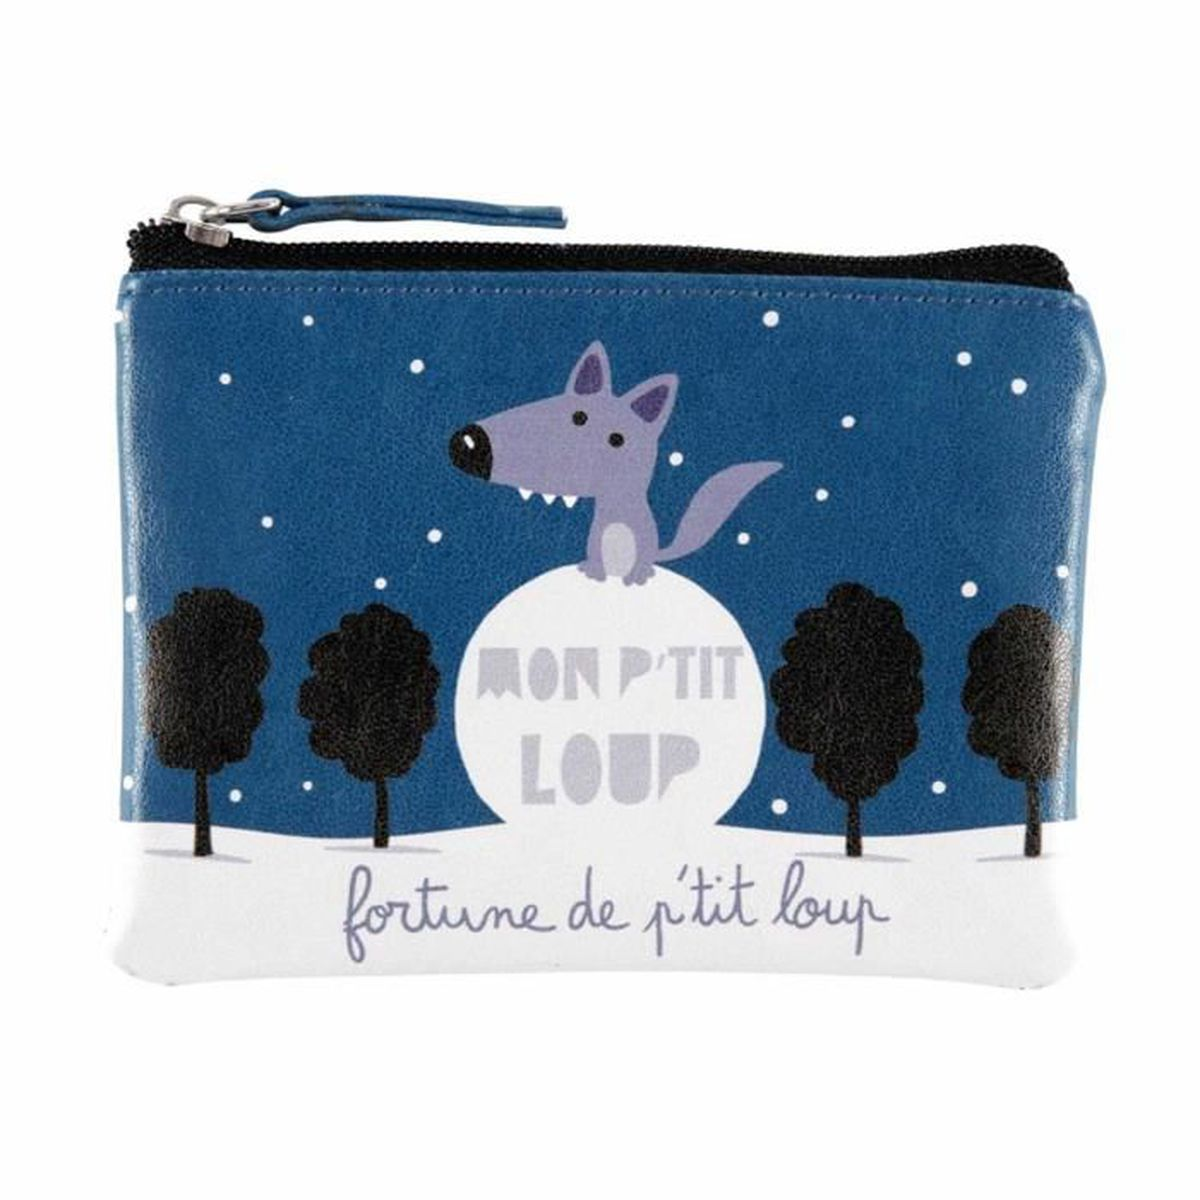 porte monnaie zipp fortune mon petit loup bleu pochette. Black Bedroom Furniture Sets. Home Design Ideas